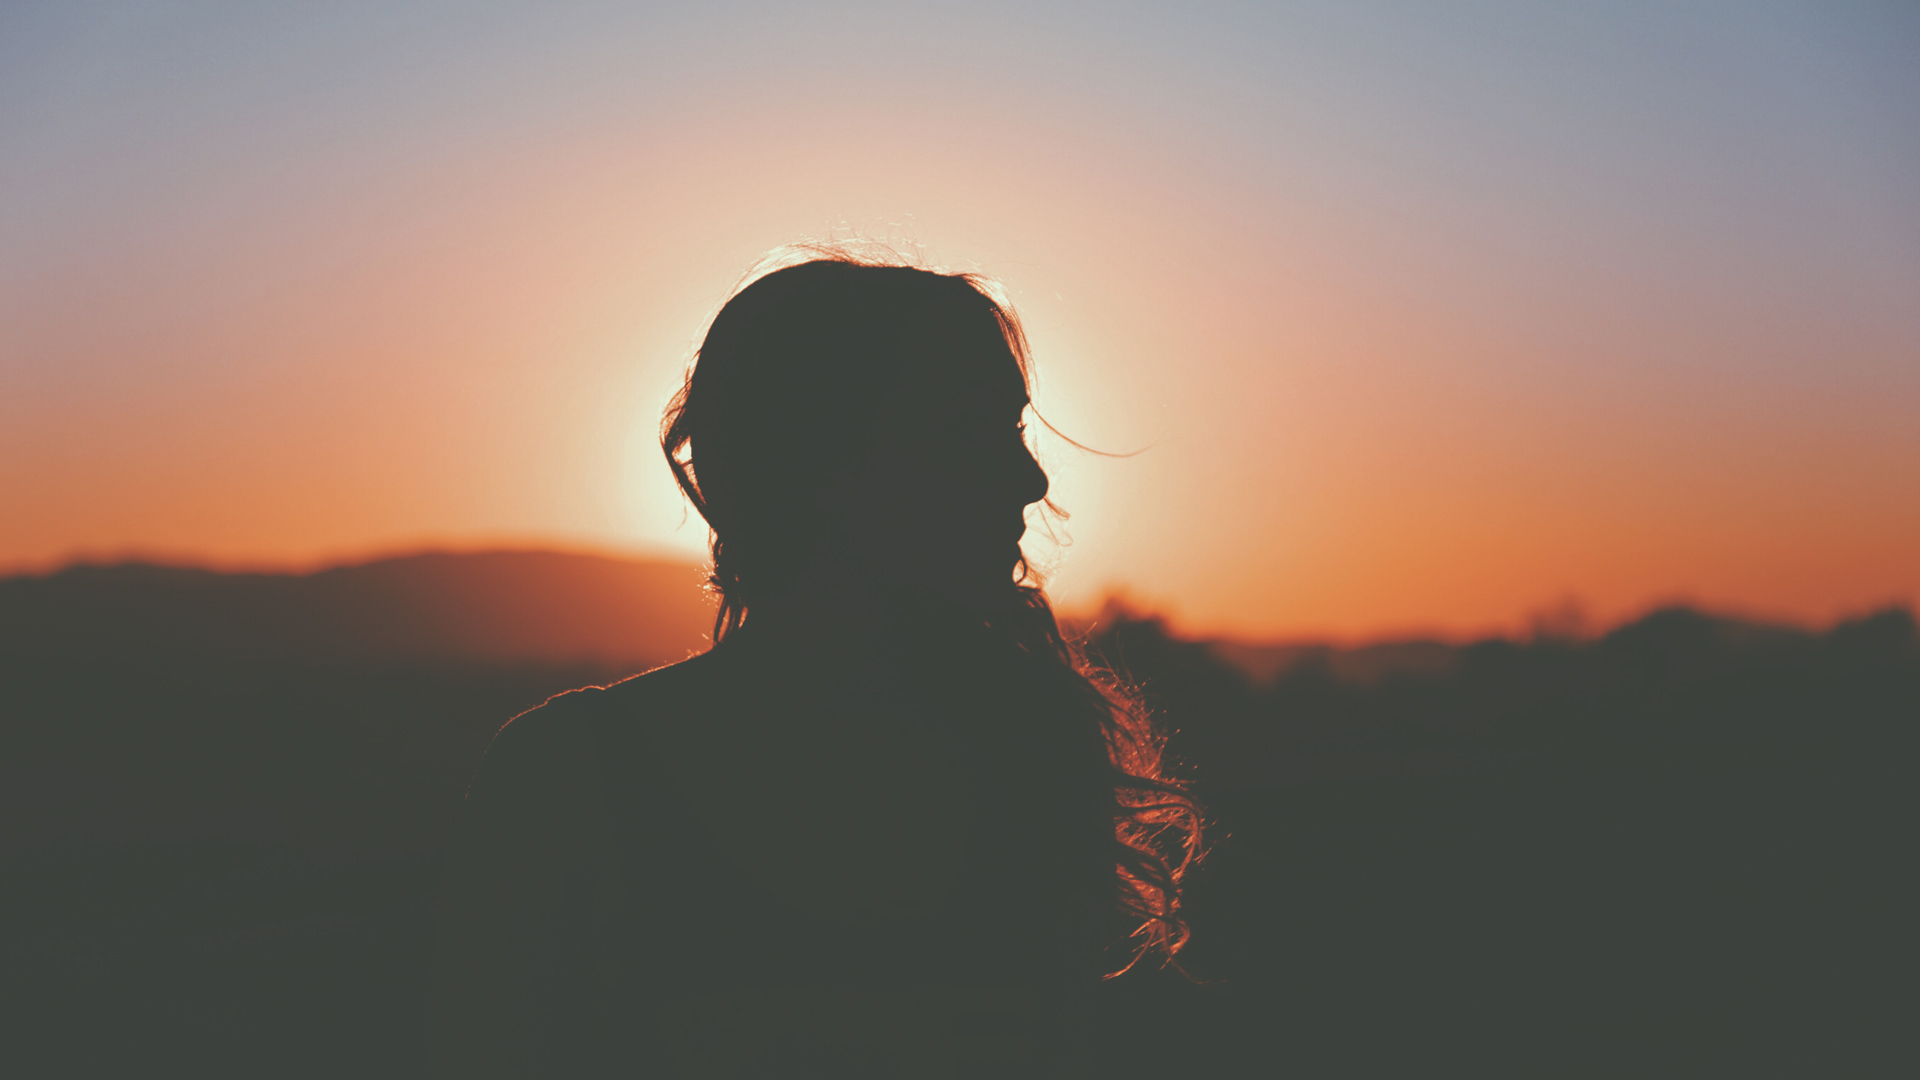 Woman silhouette against the sunset